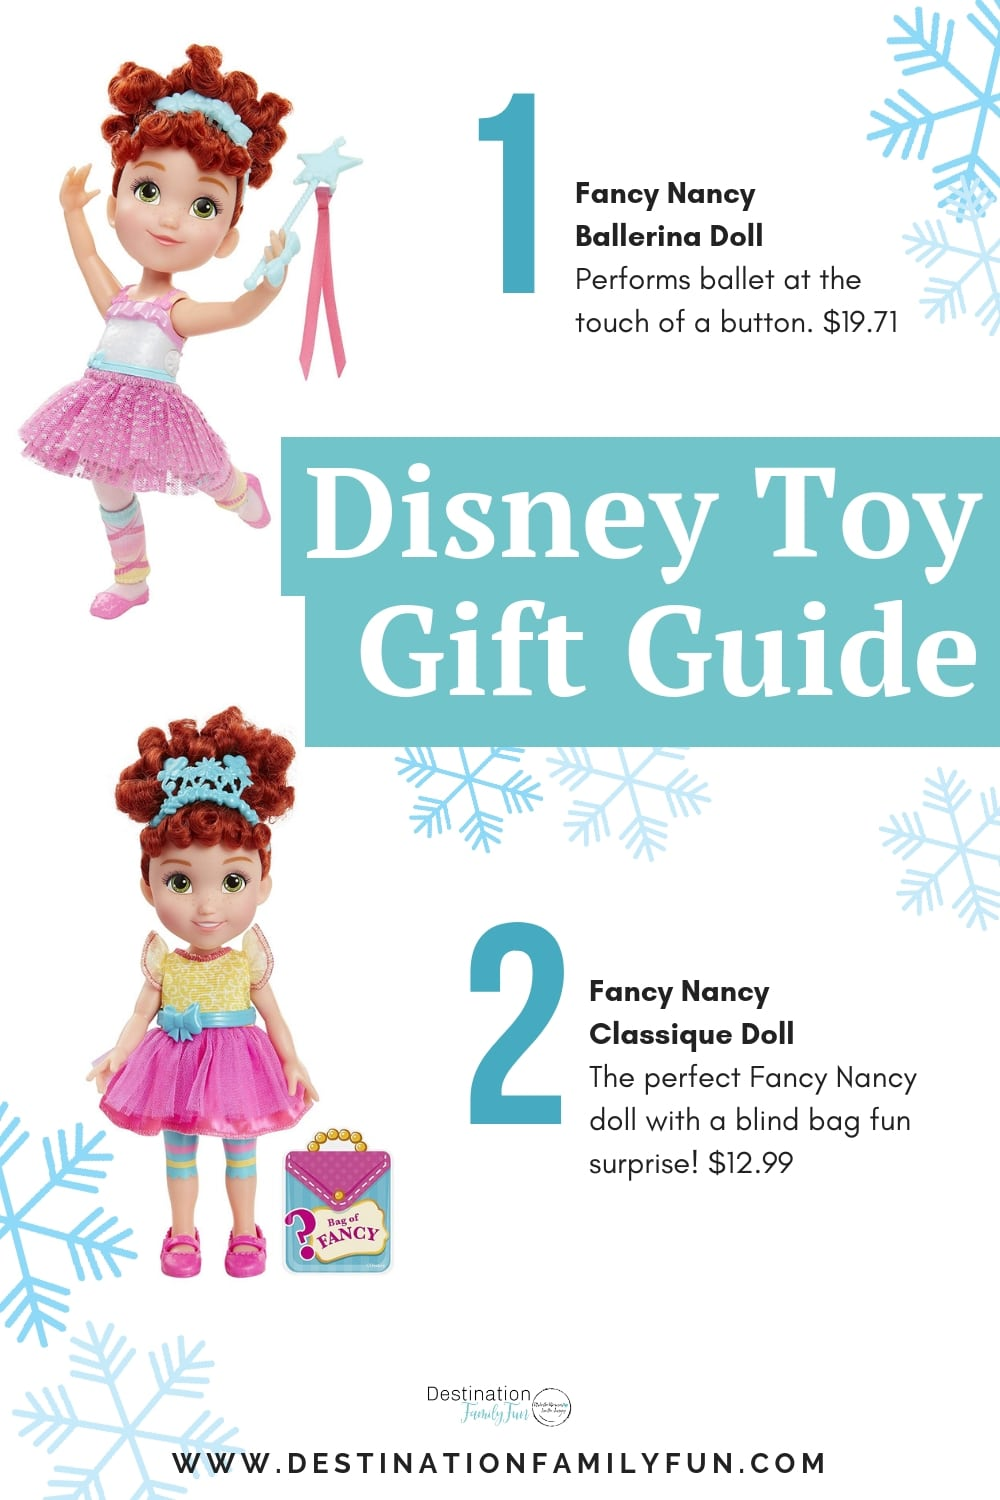 Fancy Nancy Doll Gift Guide - Disney Toy Holiday Gift Guide